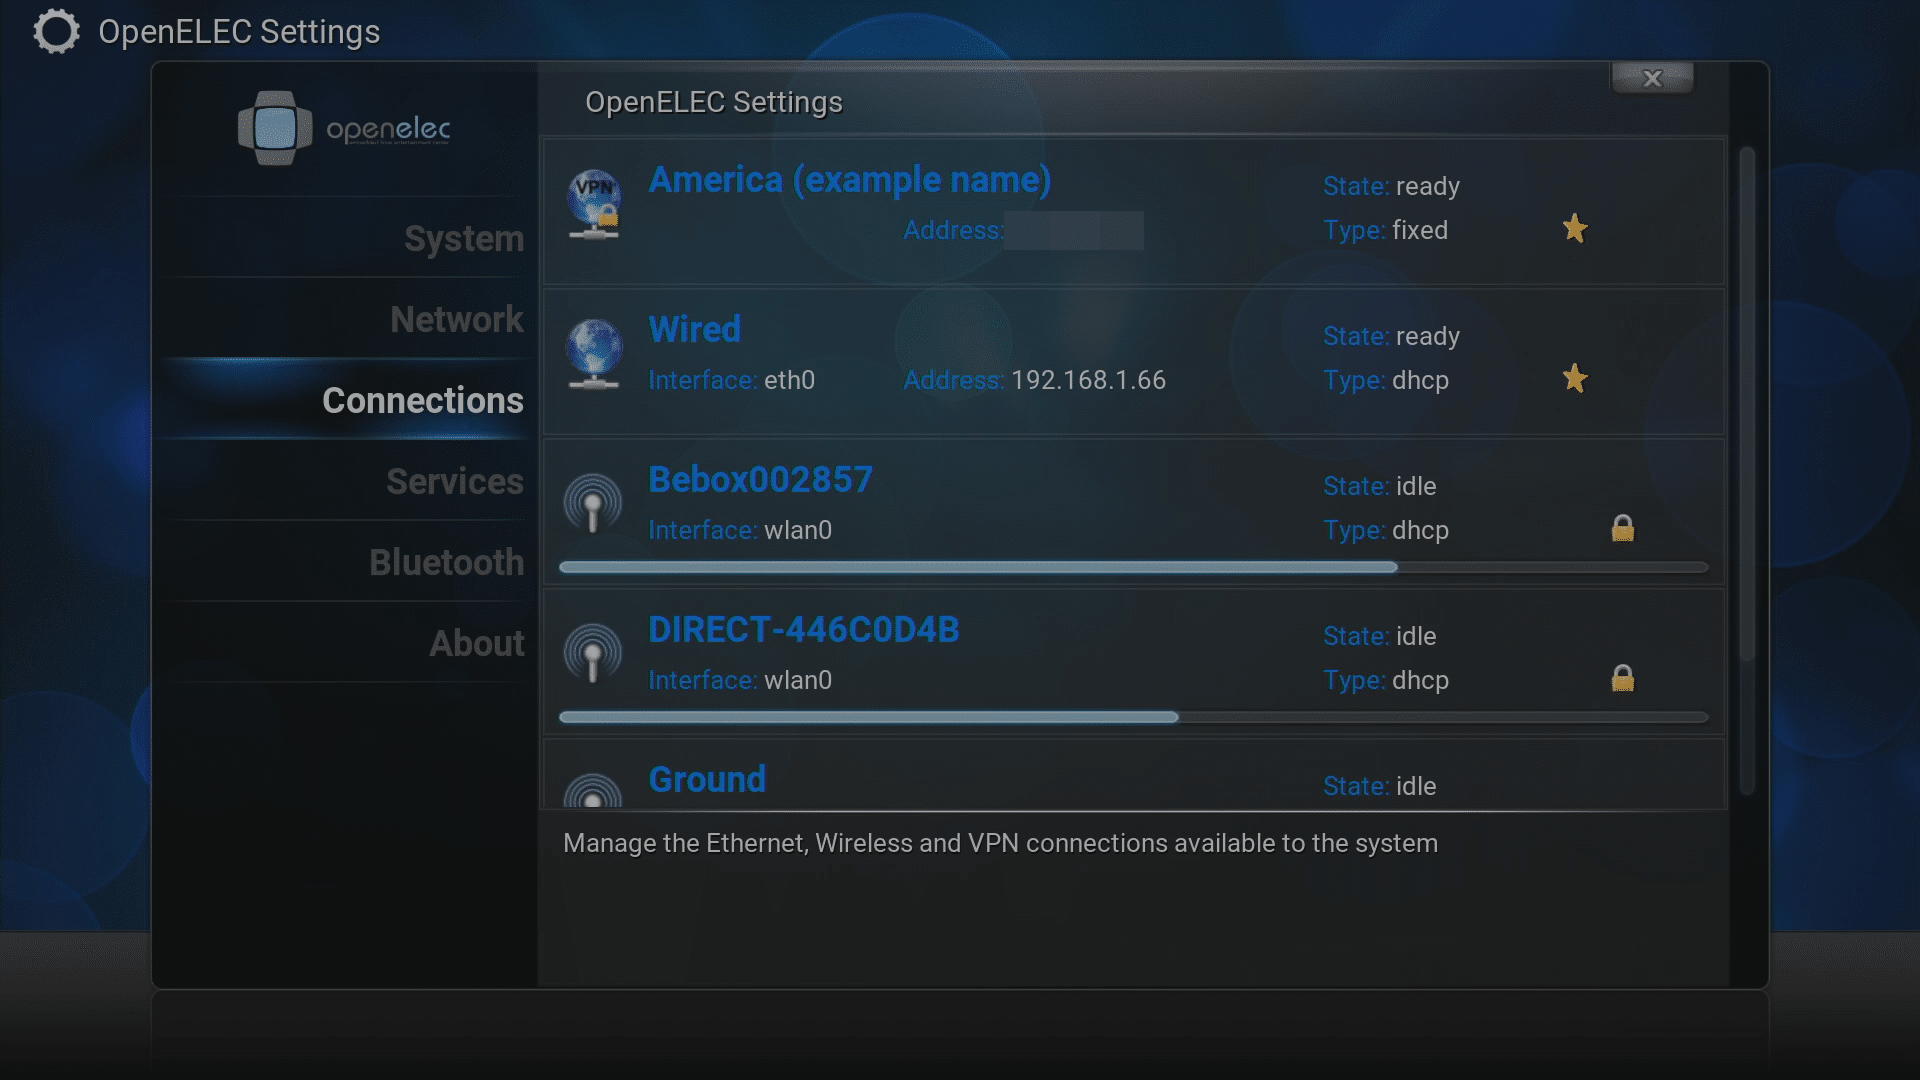 DroidBOX® OpenELEC Connections Area With VPN Showing